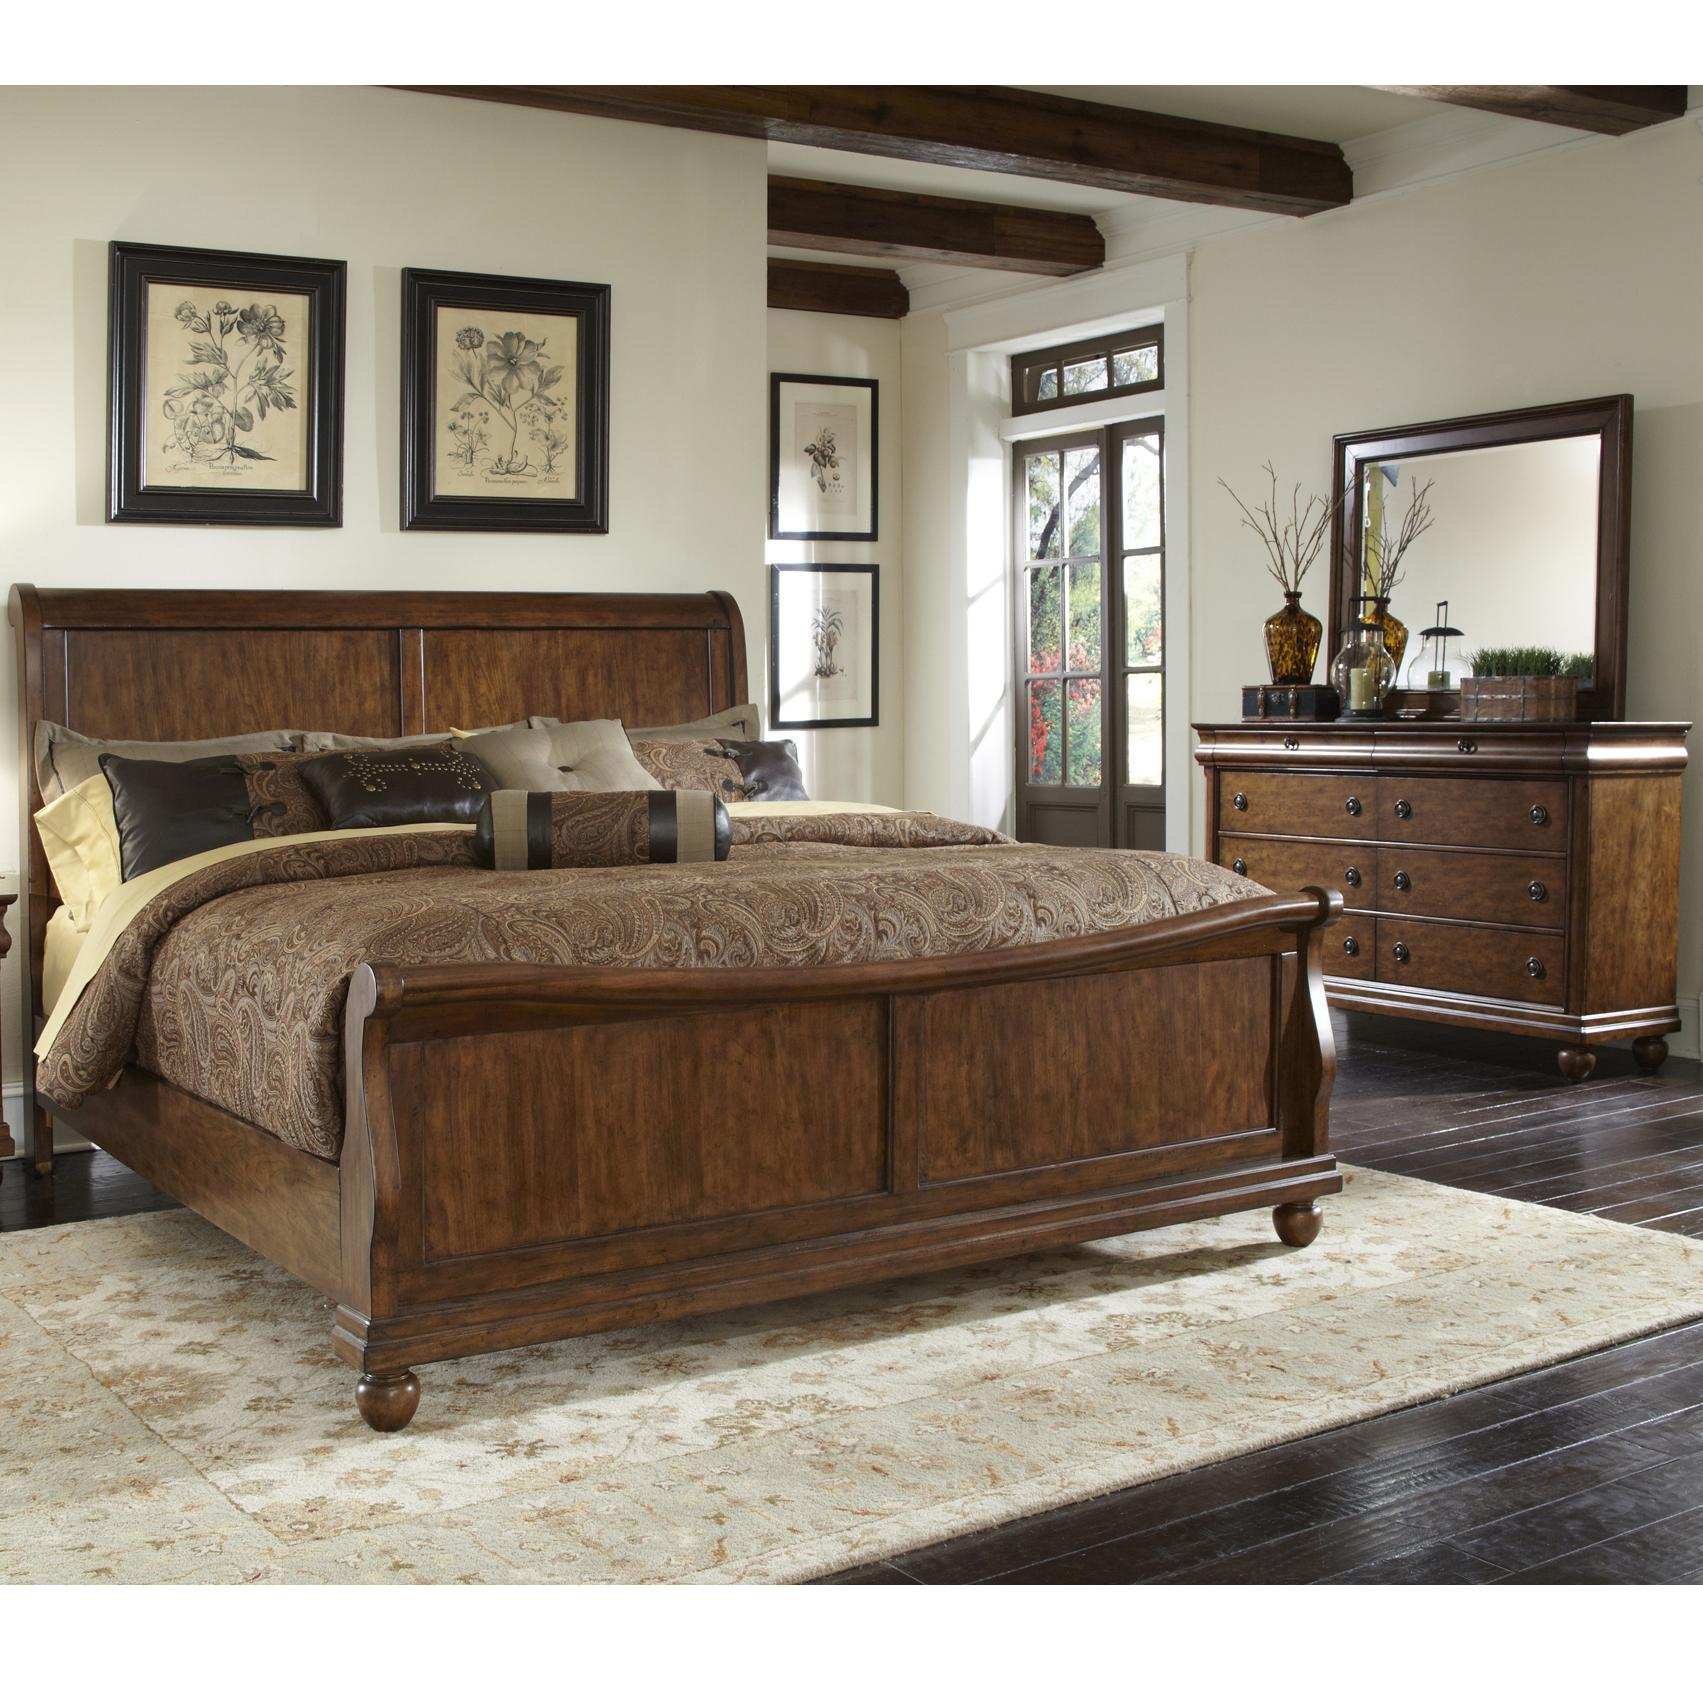 queen bedroom group 1 by liberty furniture wolf and gardiner wolf furniture